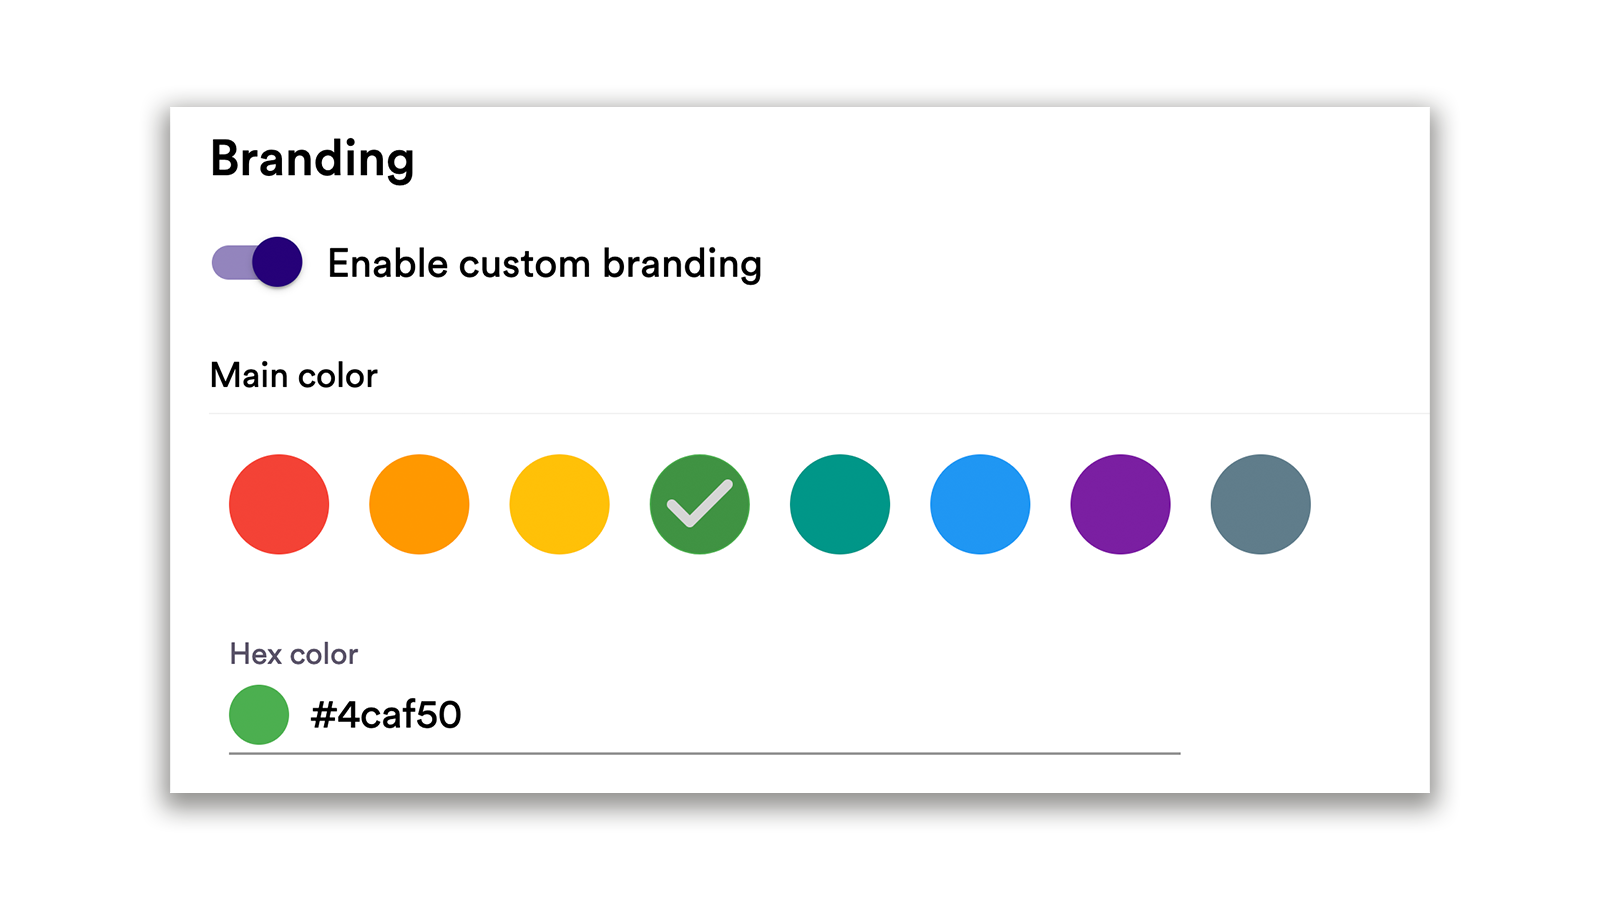 Customisable branding and other product development news